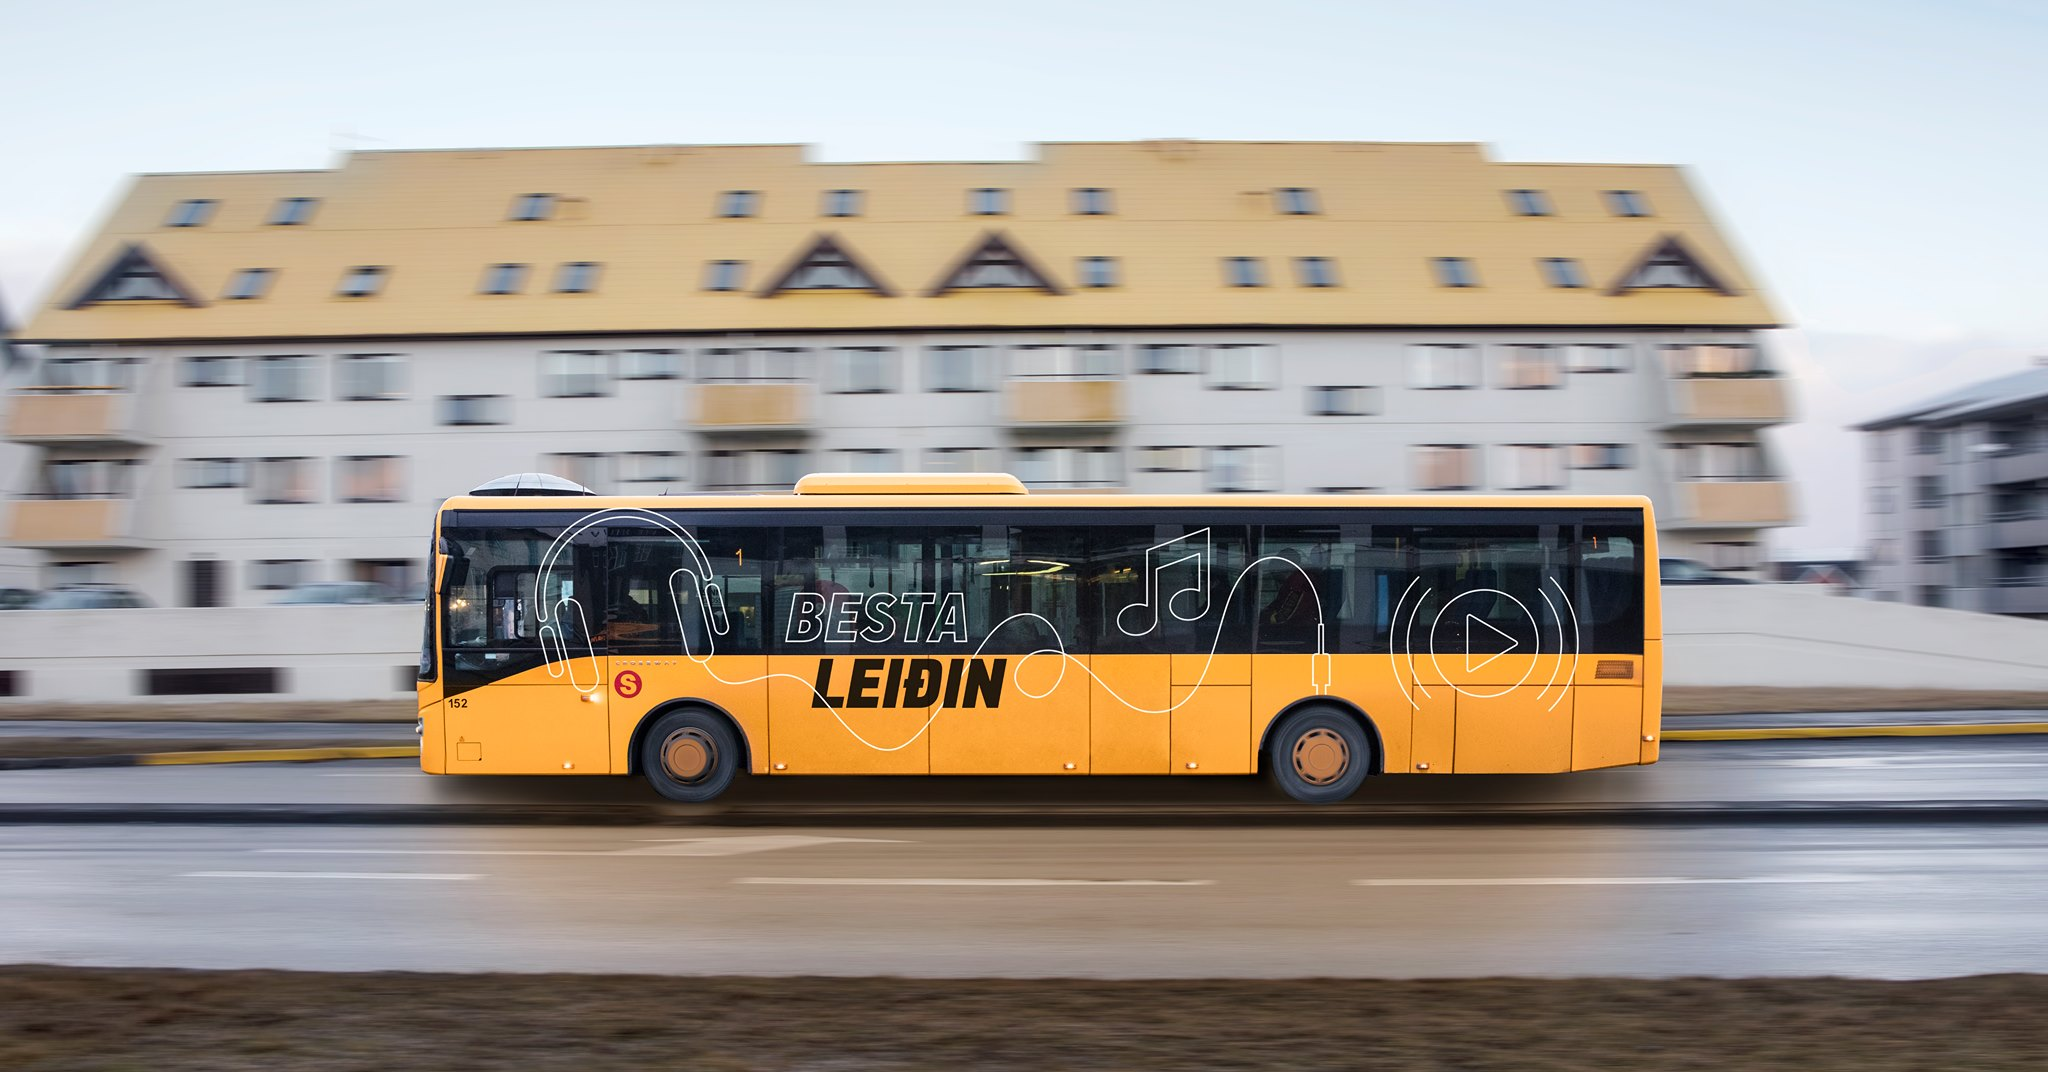 The public yellow bus in Iceland